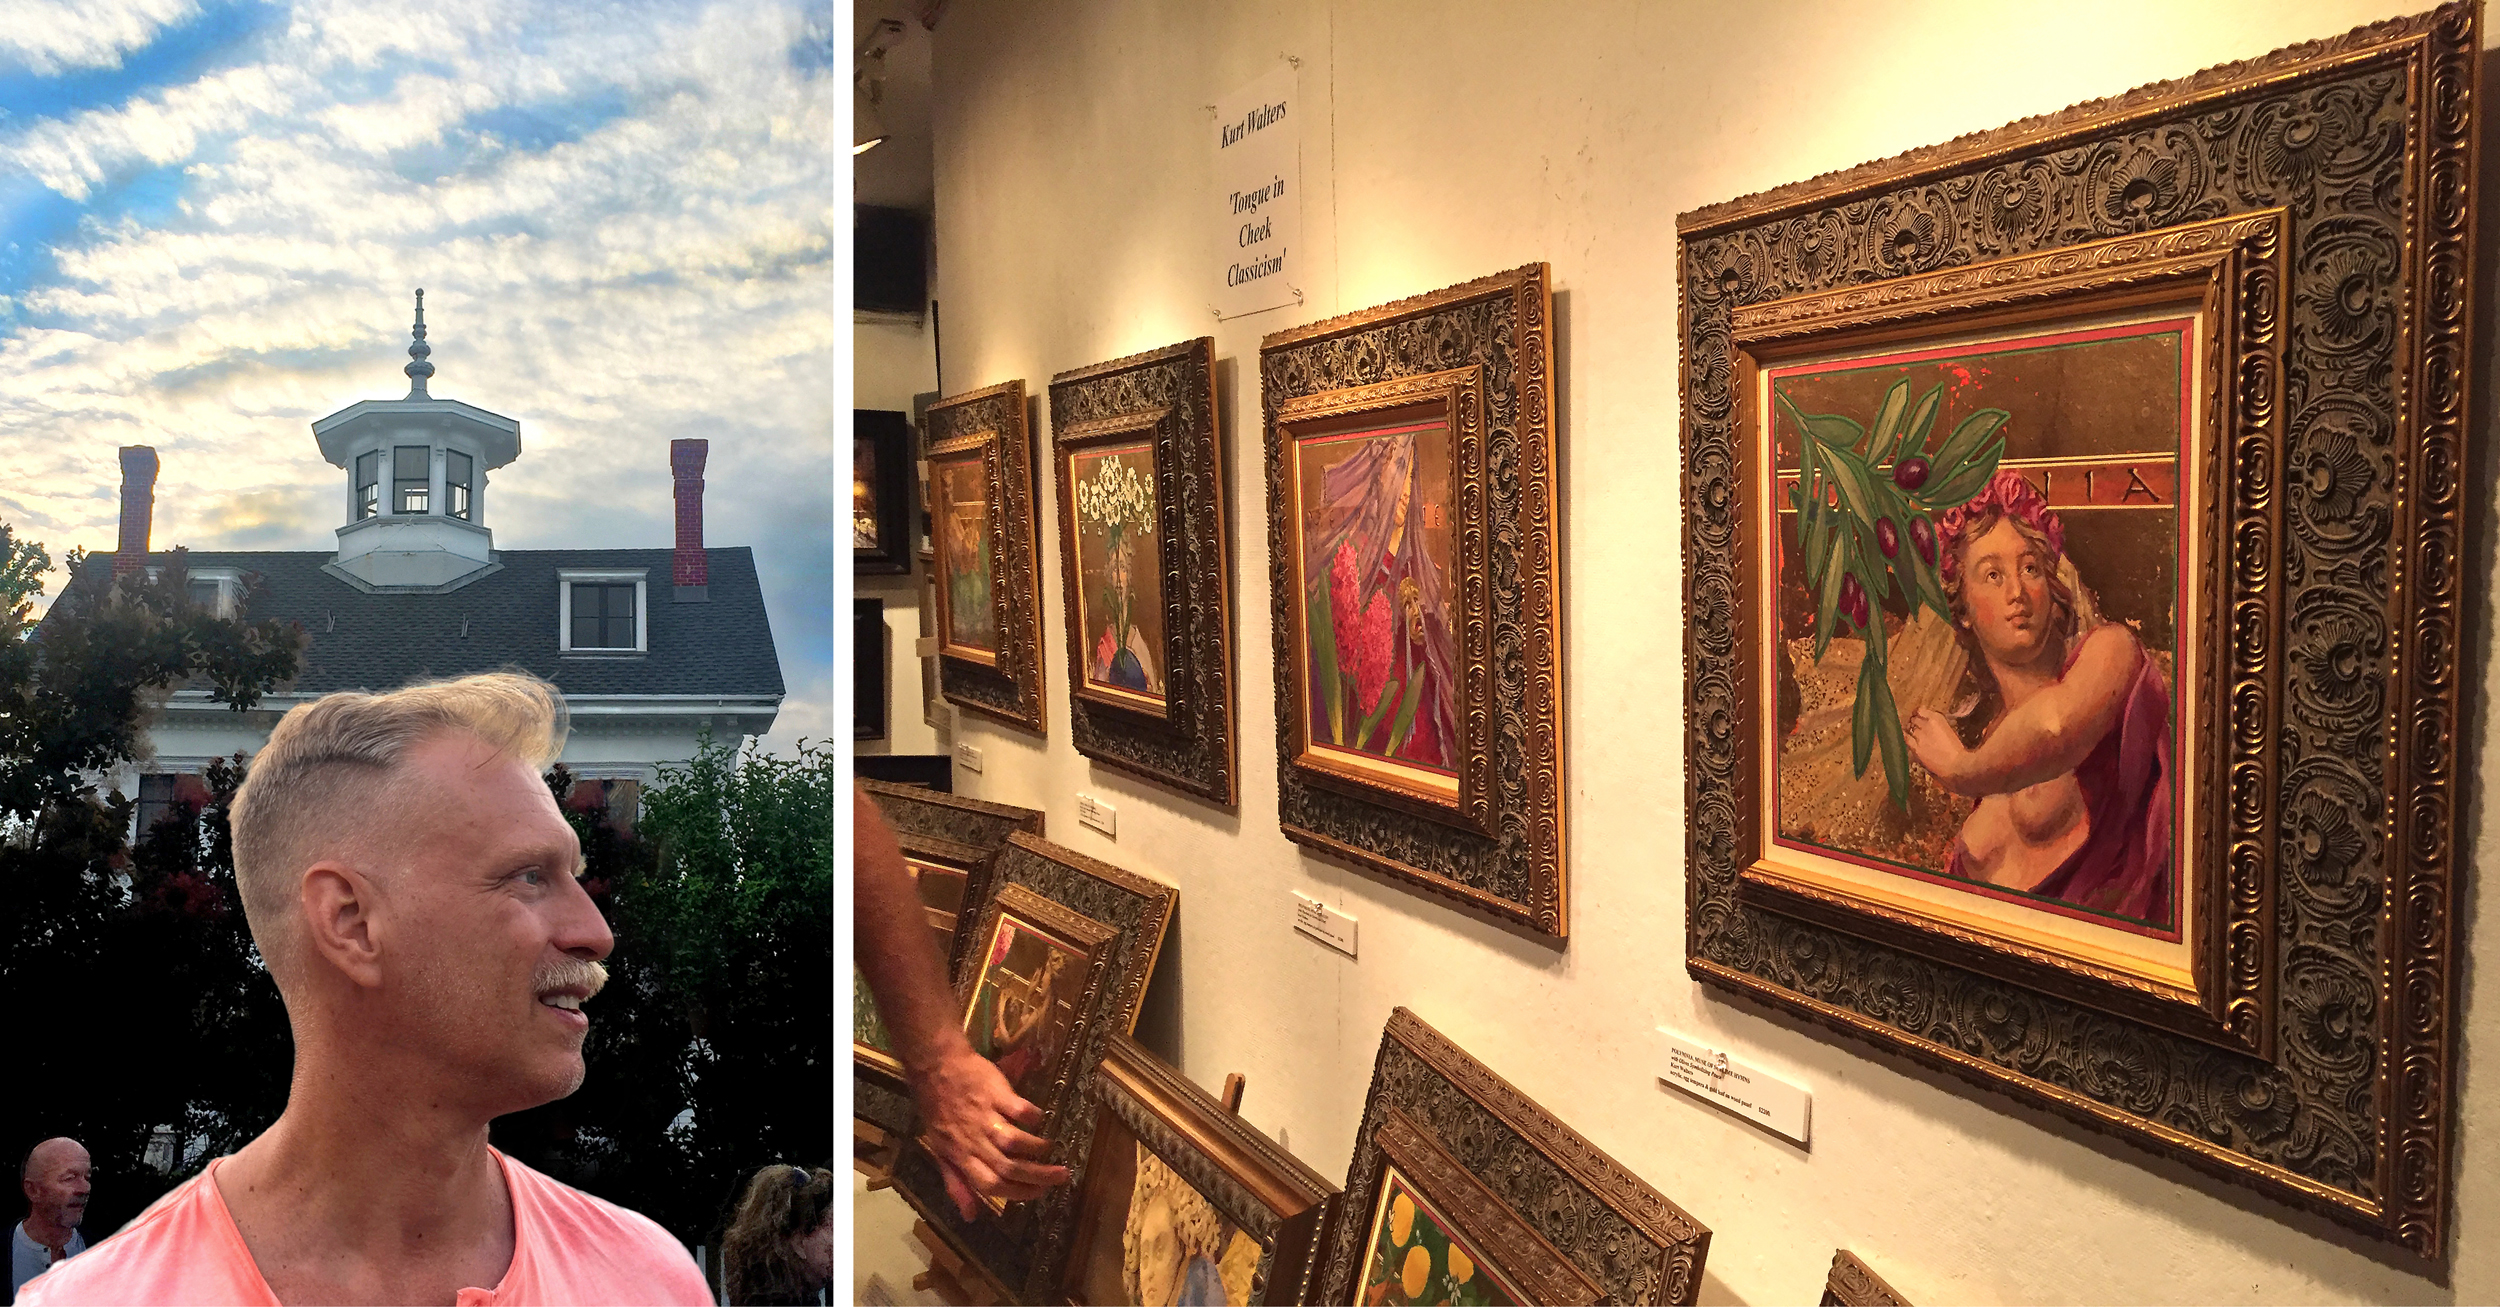 Always a Fun Mix:    New England style, along with art galleries that show a variety of artists, including me!